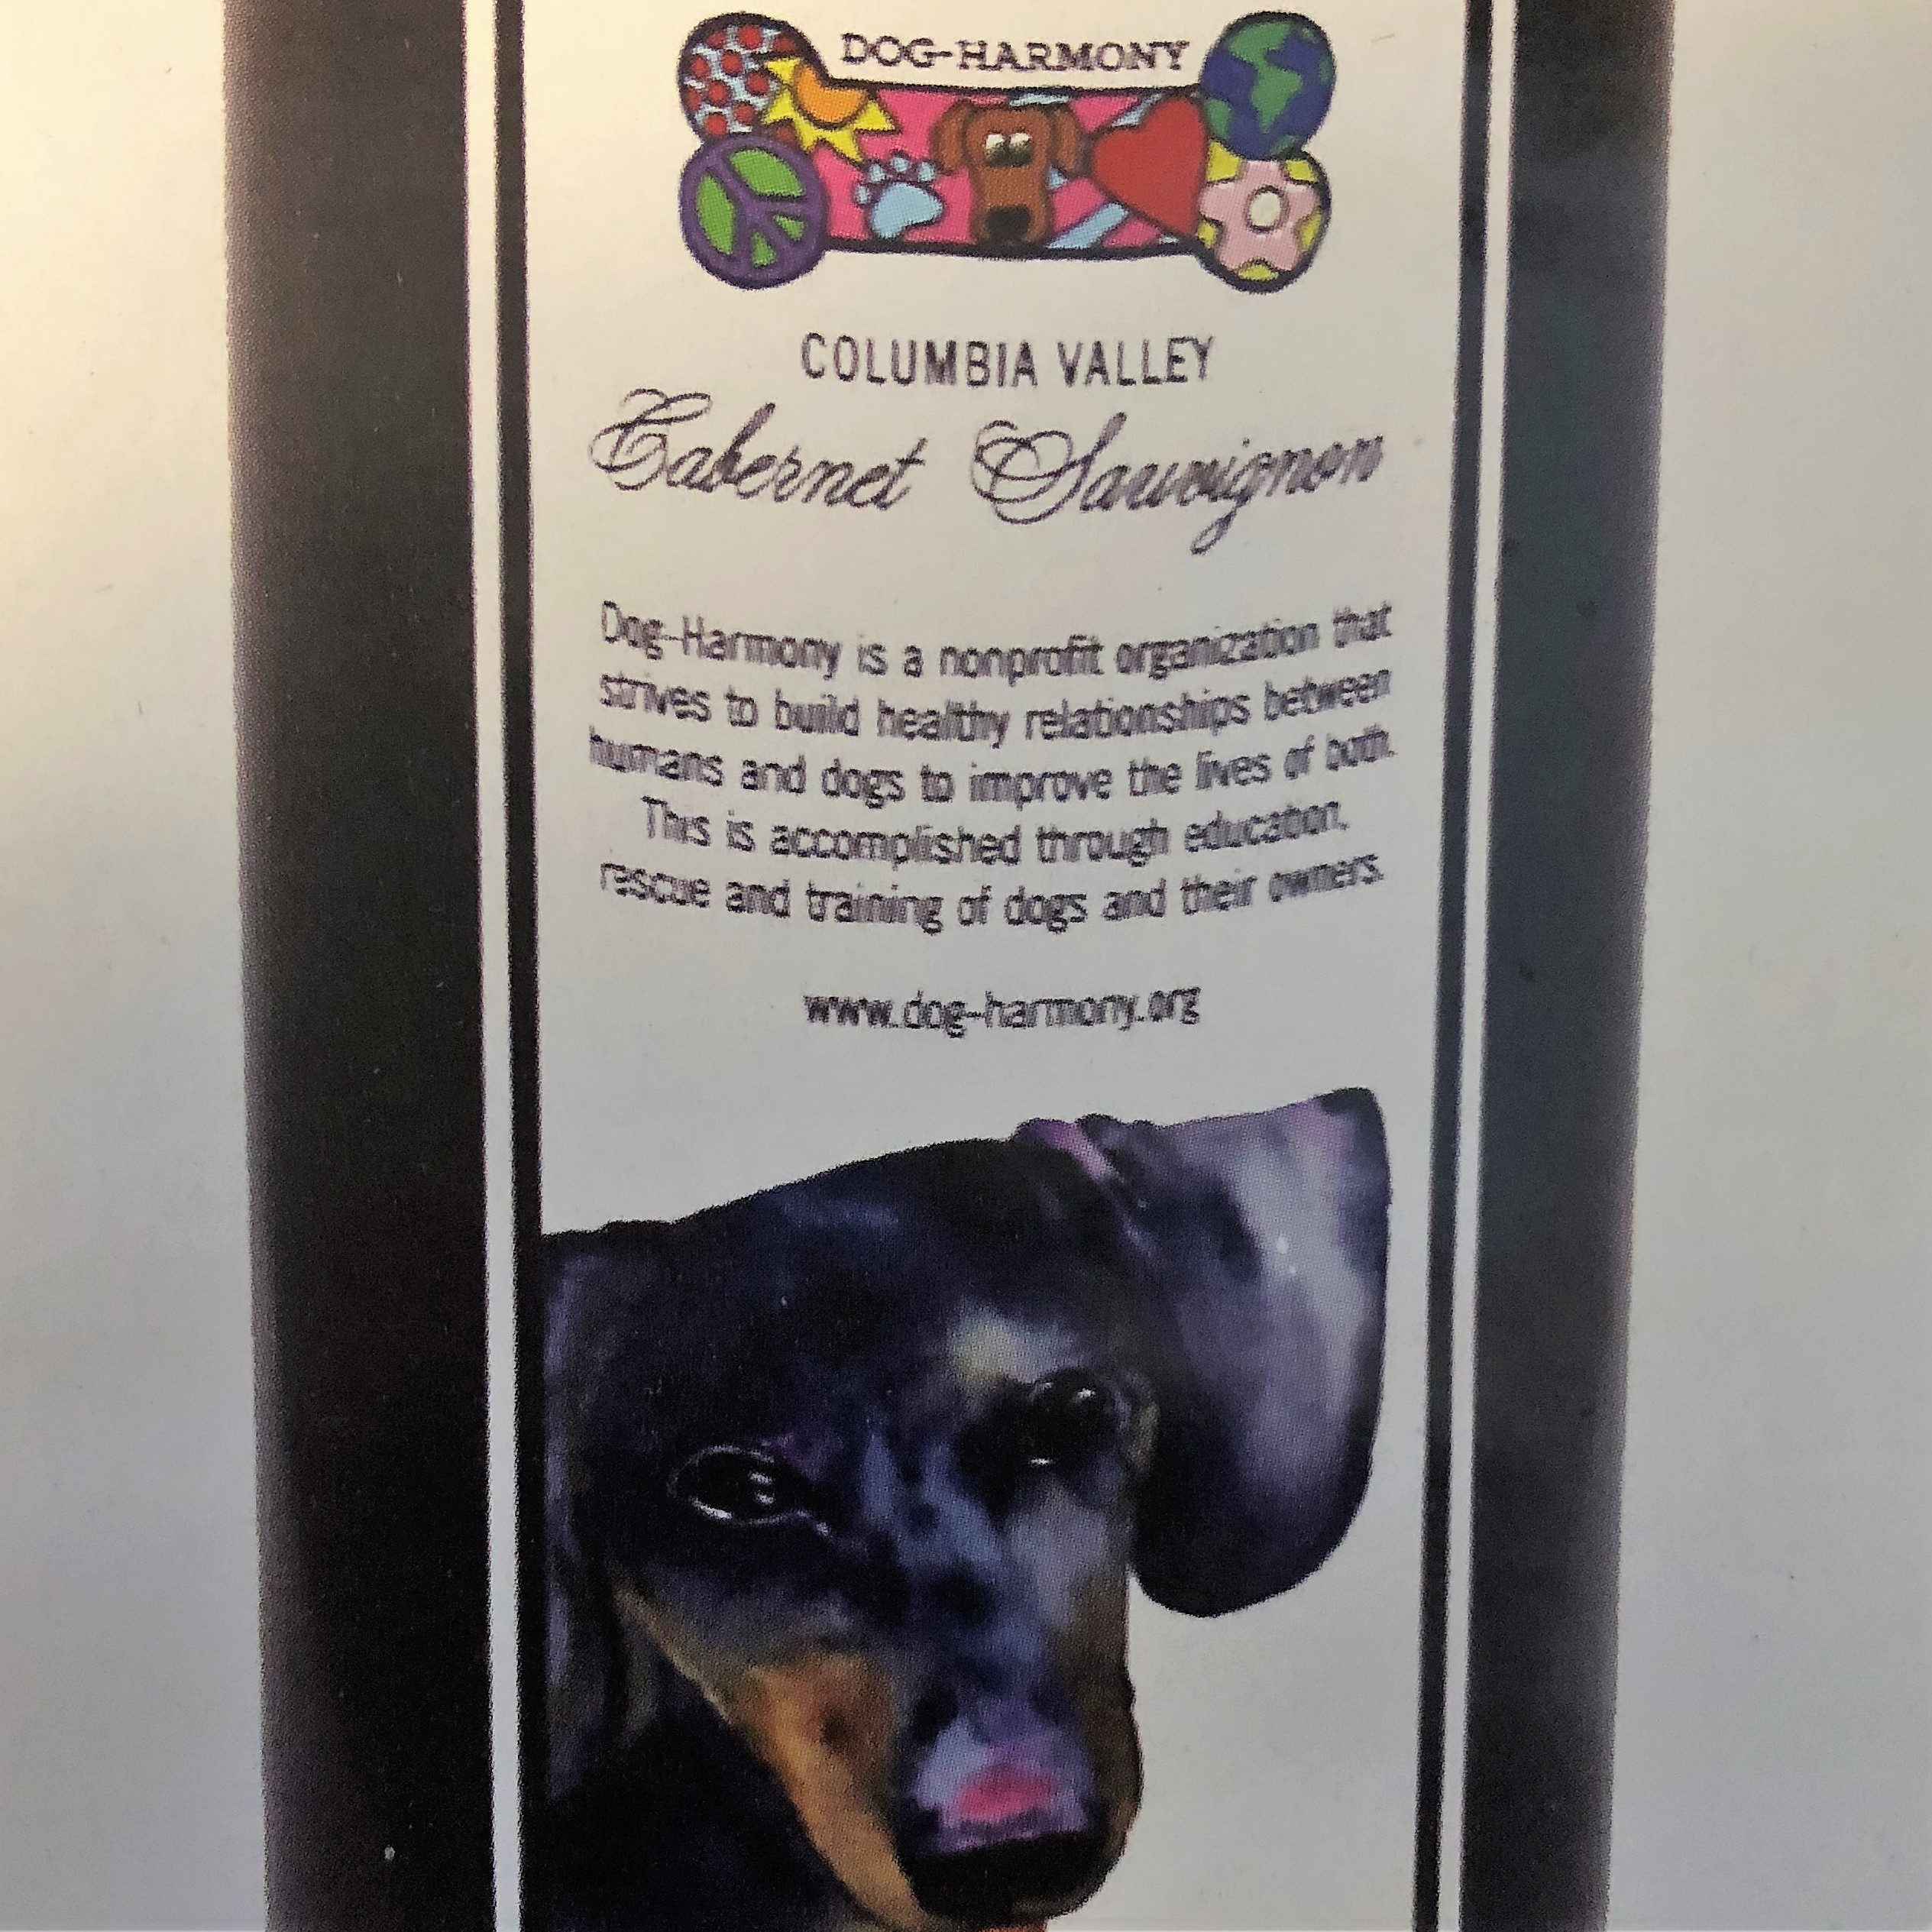 Dog-Harmony offers its own wine with donation